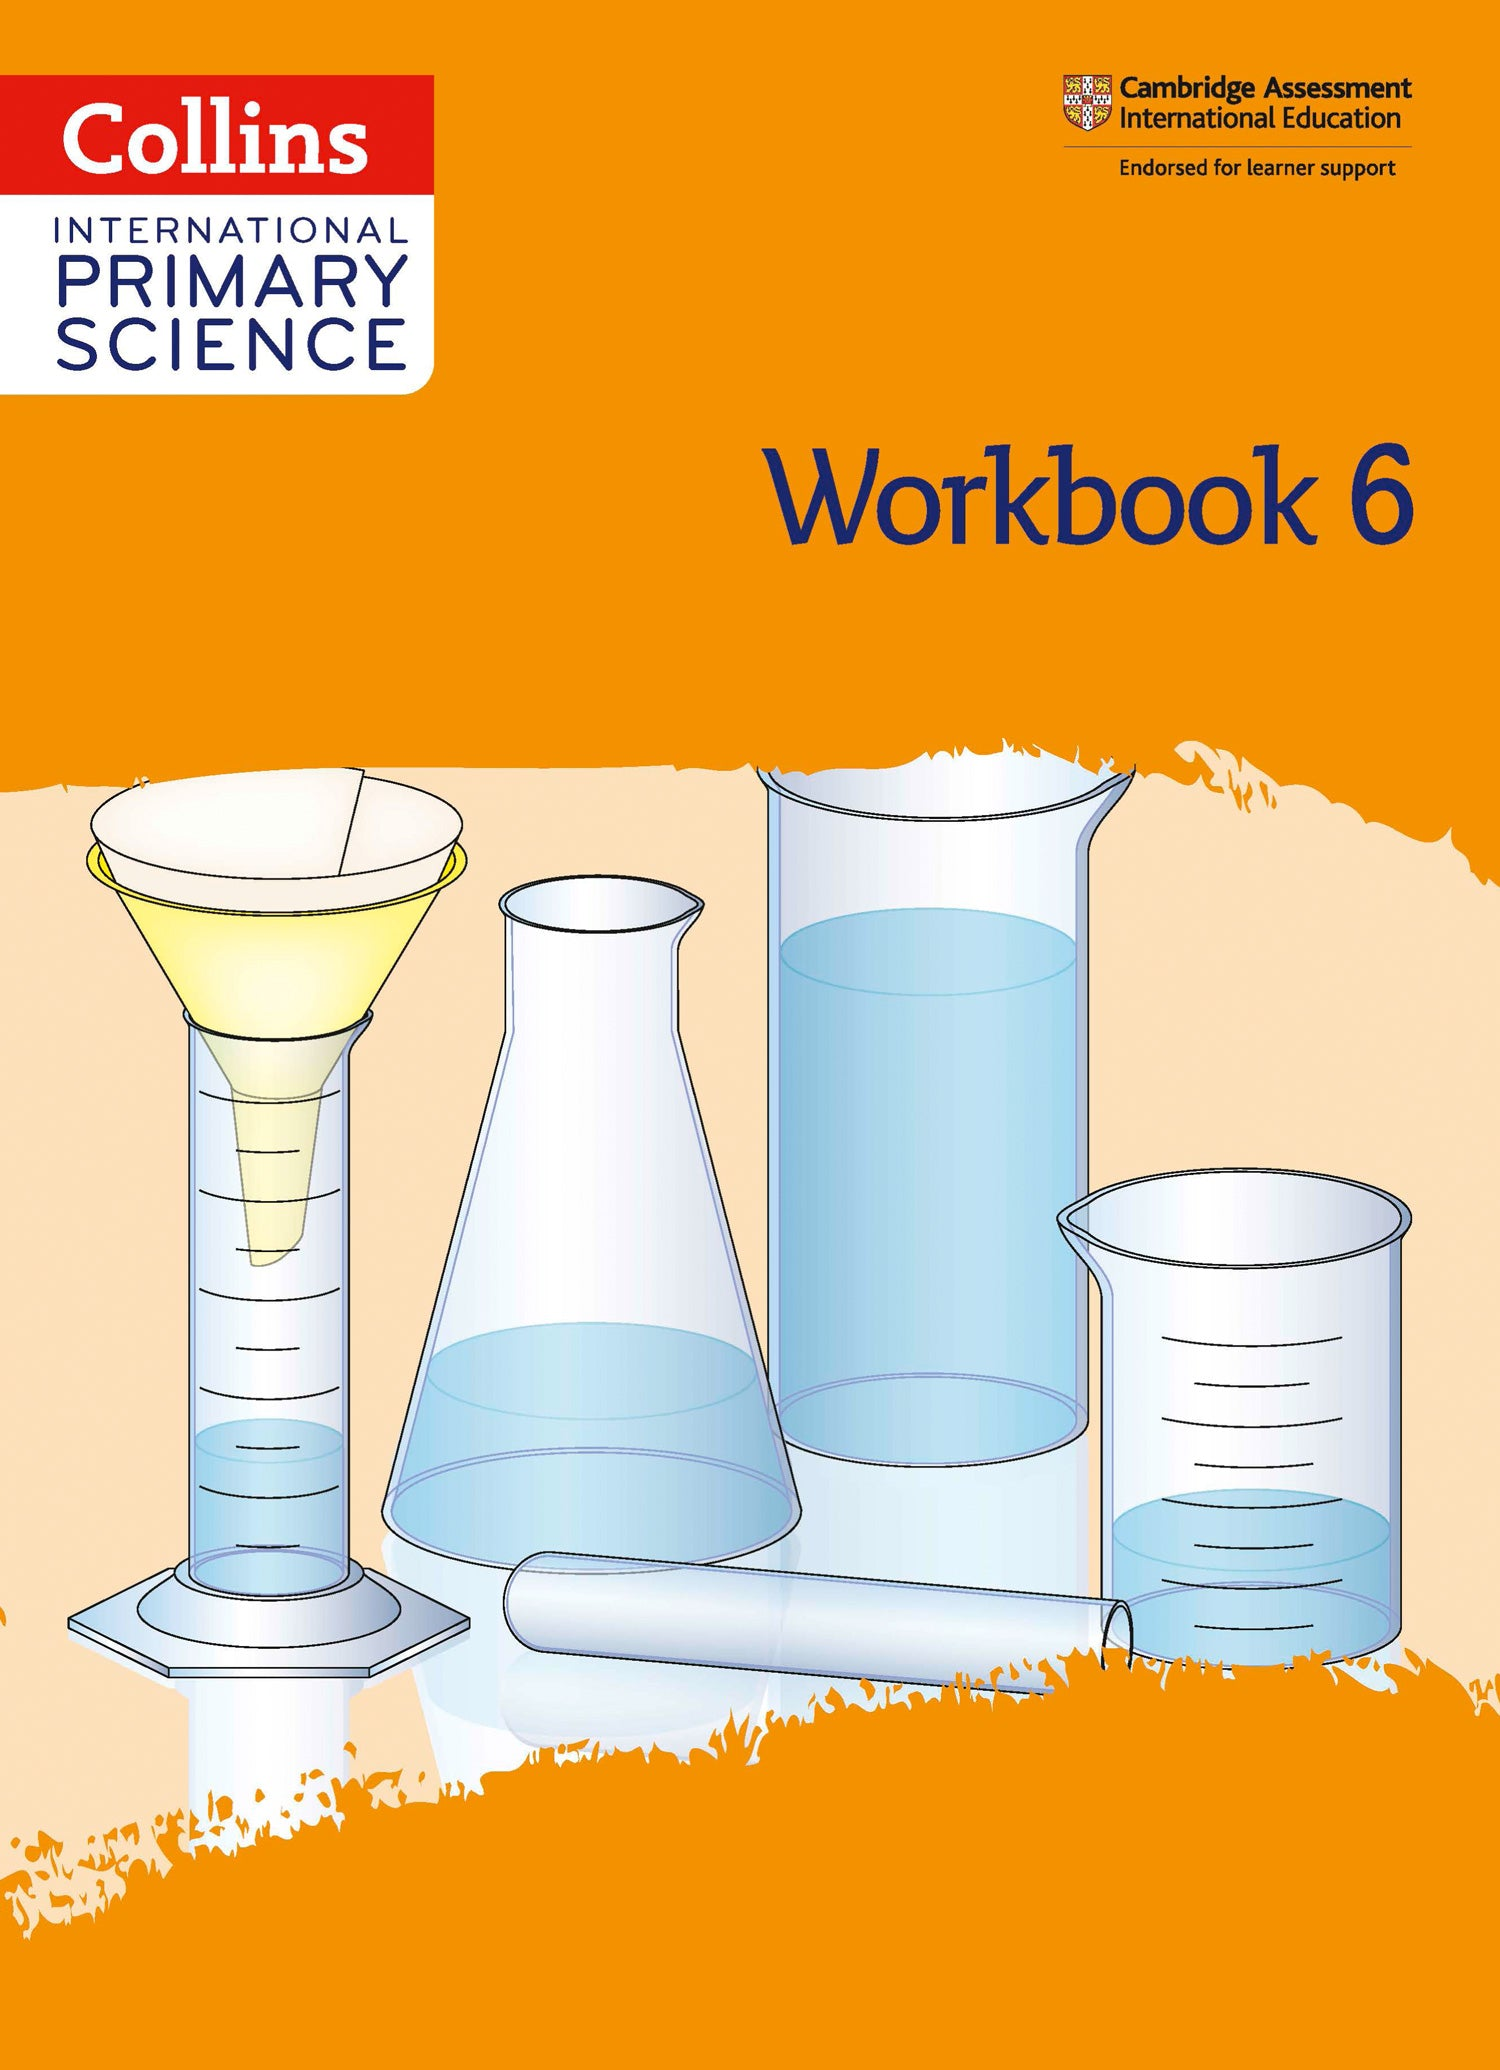 Primary Science 2021 (0097)